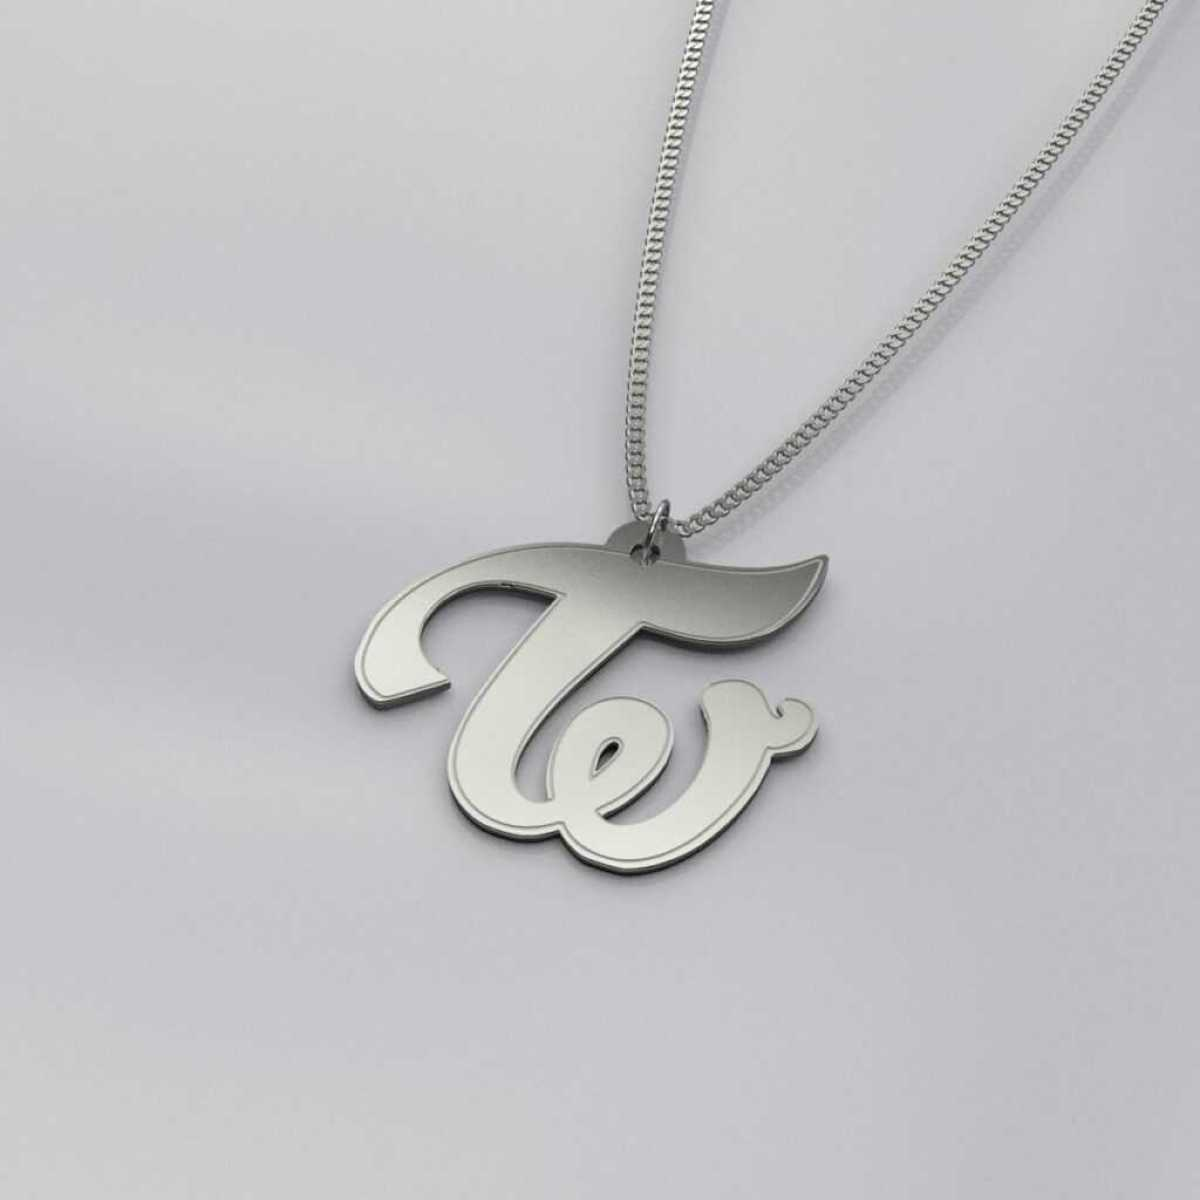 Twice Logo Engraved Charm Necklace